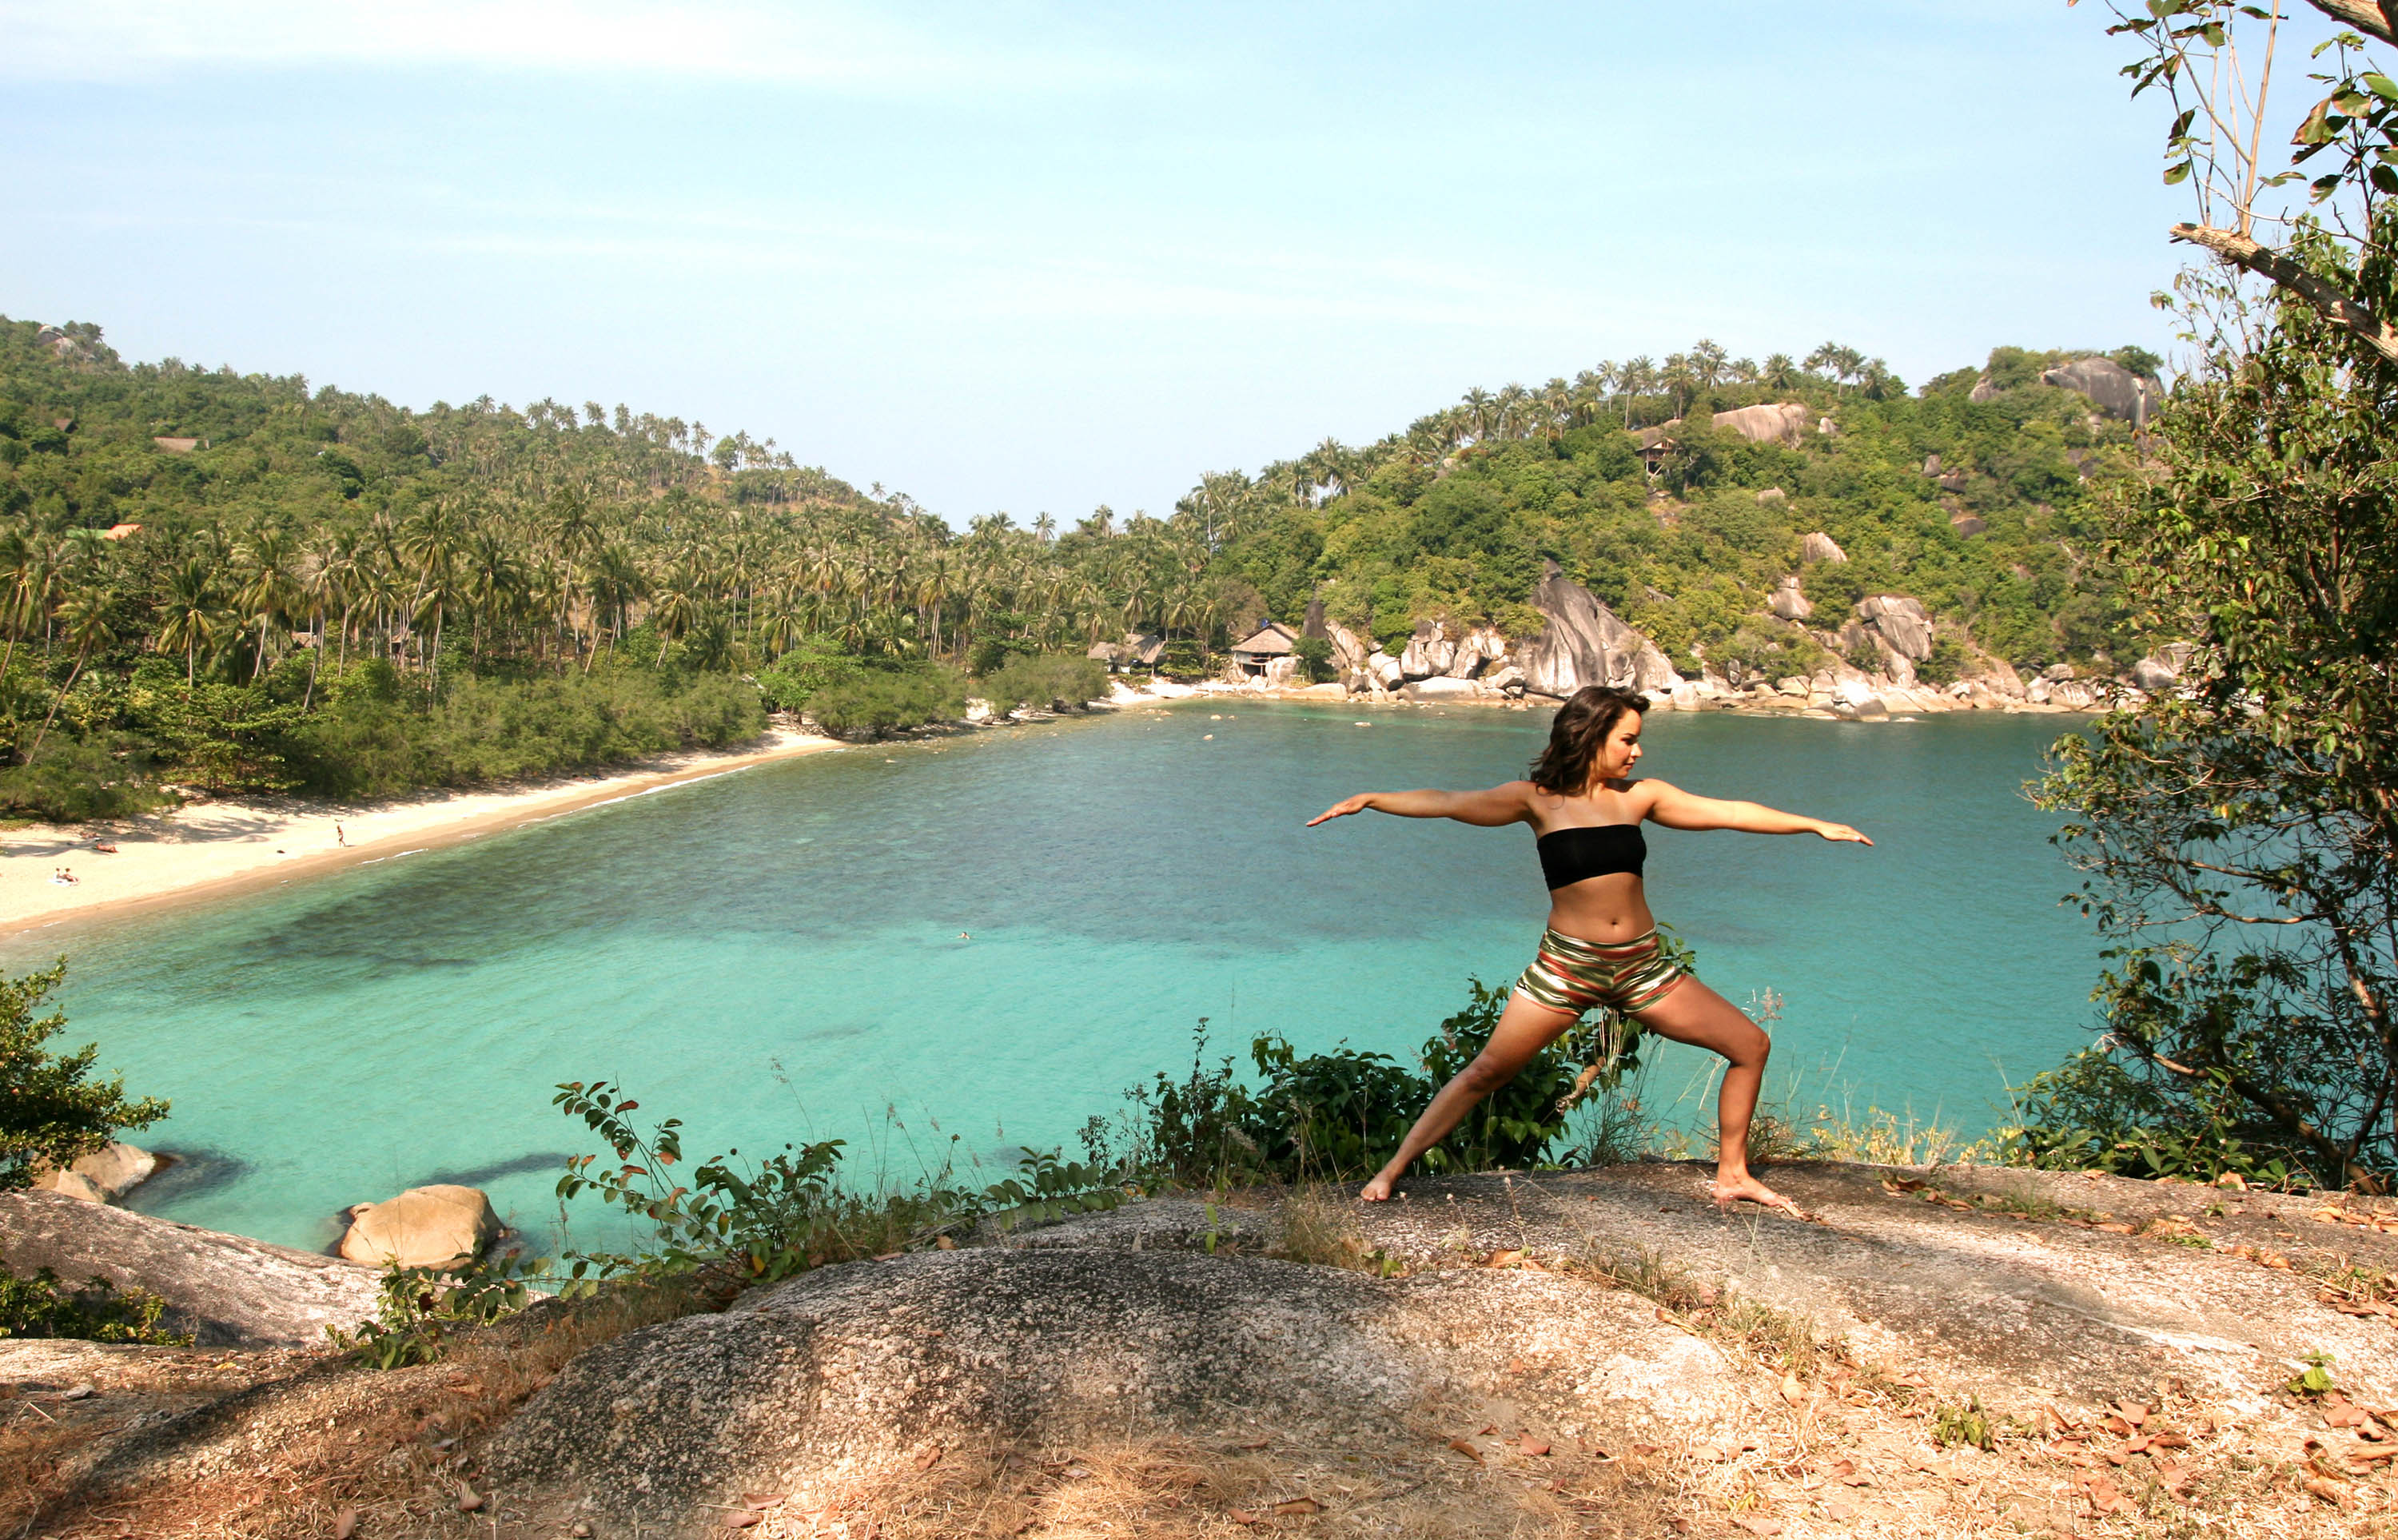 Virabhadrasana 2 (Warrior 2)